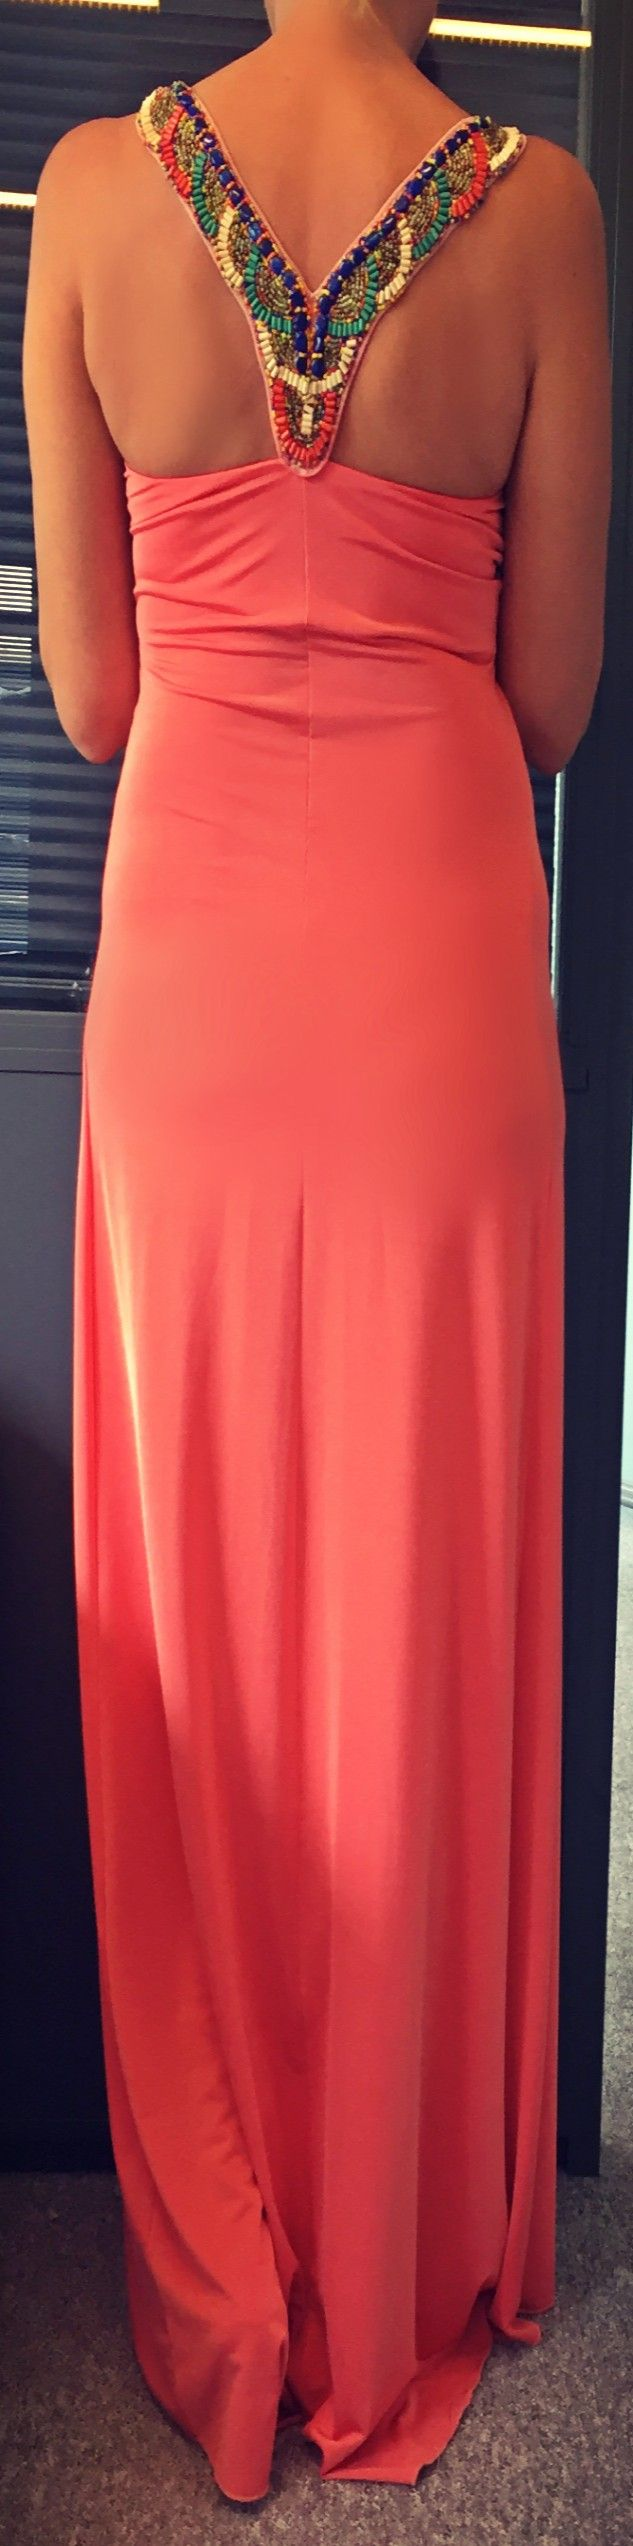 #Maxi #Coral #Dress with #Semi #Precious #Stones Discover more in our #Eshop #summerdress